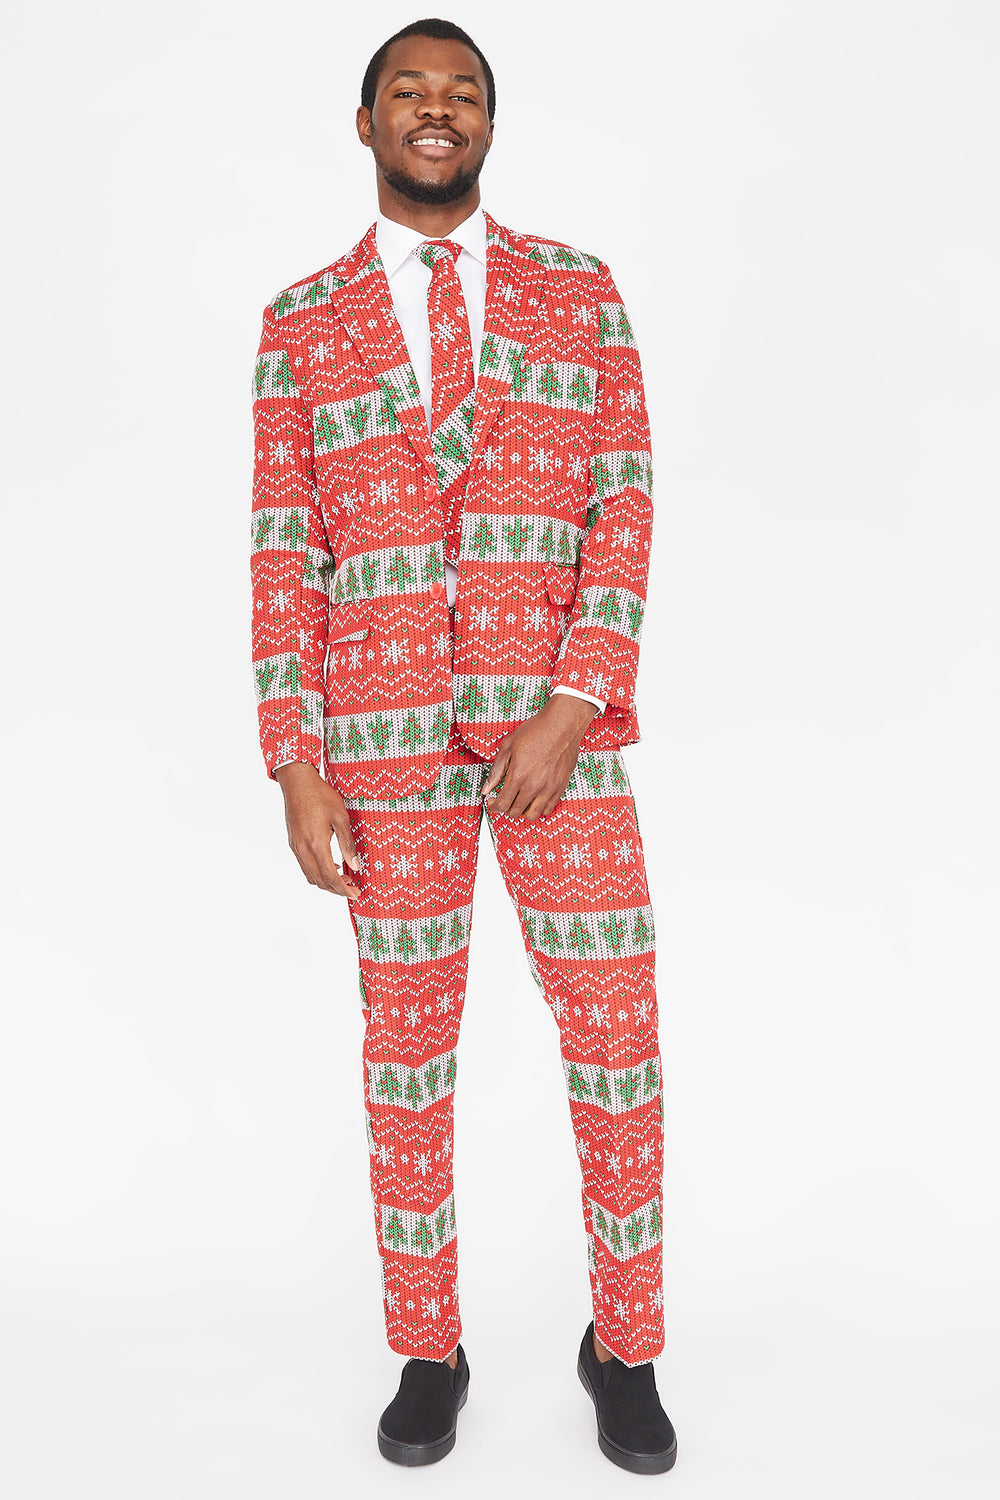 3-Piece Ugly Christmas Tree Fair Isle Printed Suit Red